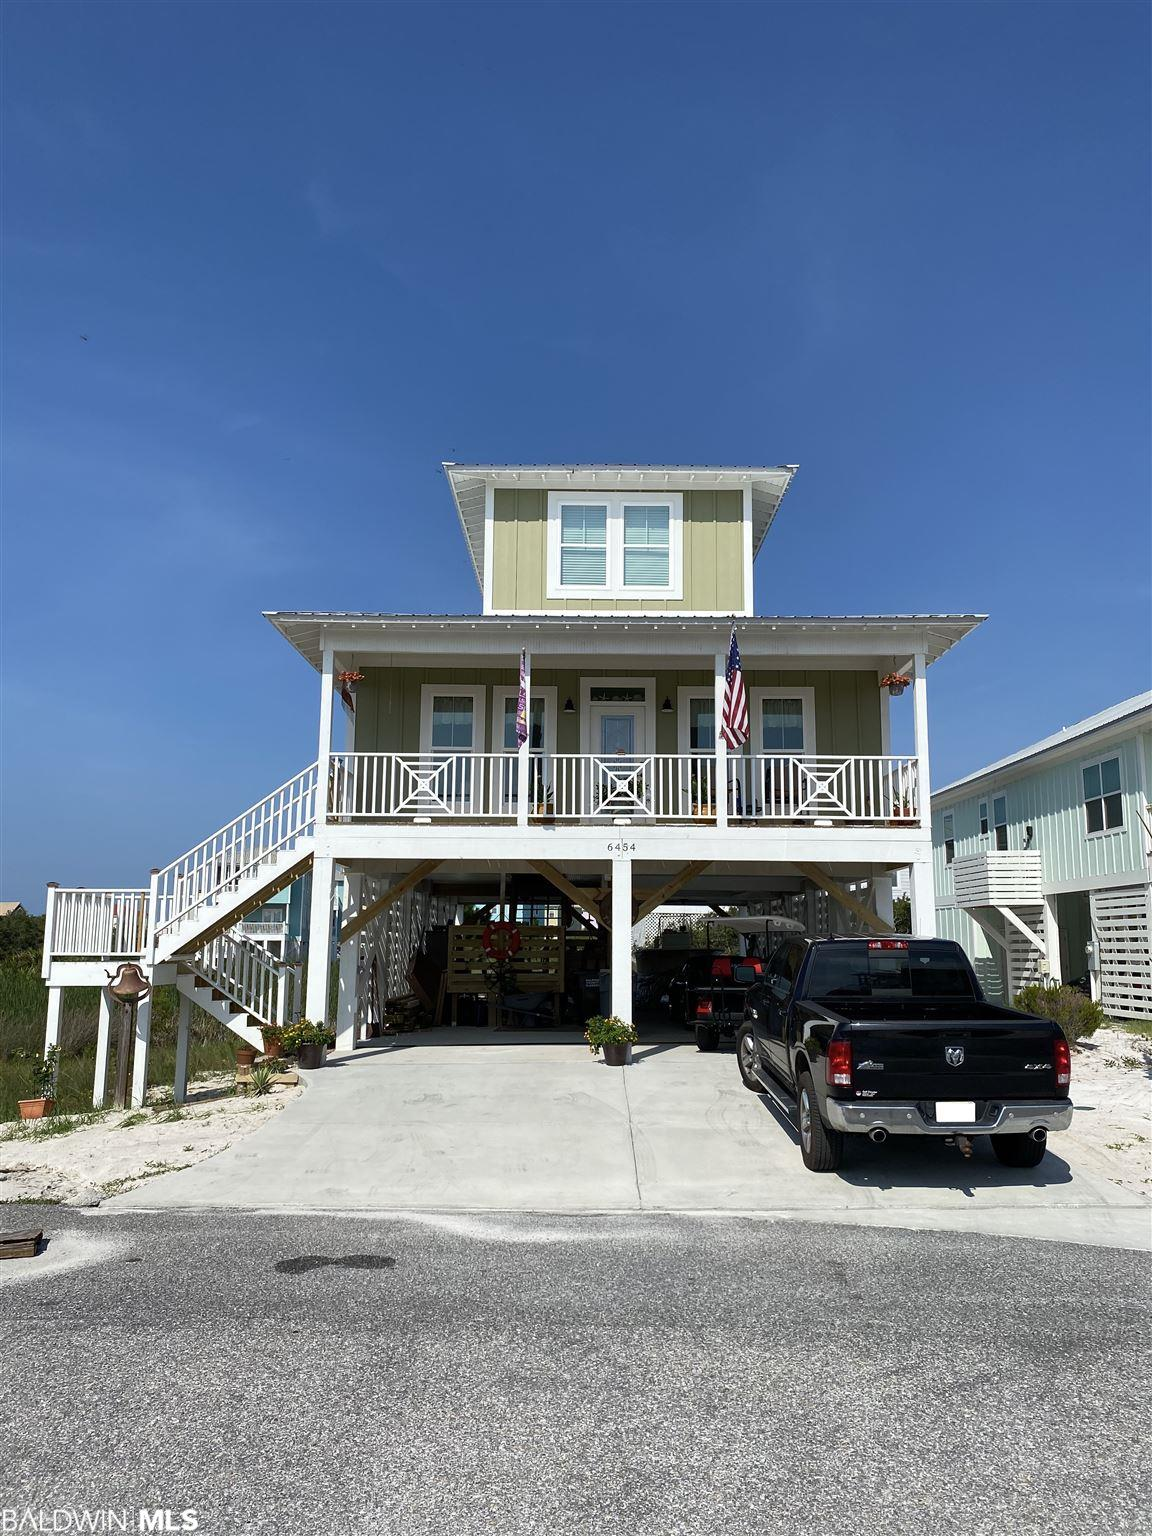 A beautiful 3br 2 1/2ba raised beach cottage in Morgantown! This home sits on an elevated lot with Gulf Views. It is the builder's personal home and is less than a year old. Morgantown features a beach access, HOA owned beach lot, two pools, and tennis courts. $40-45K rental projection.